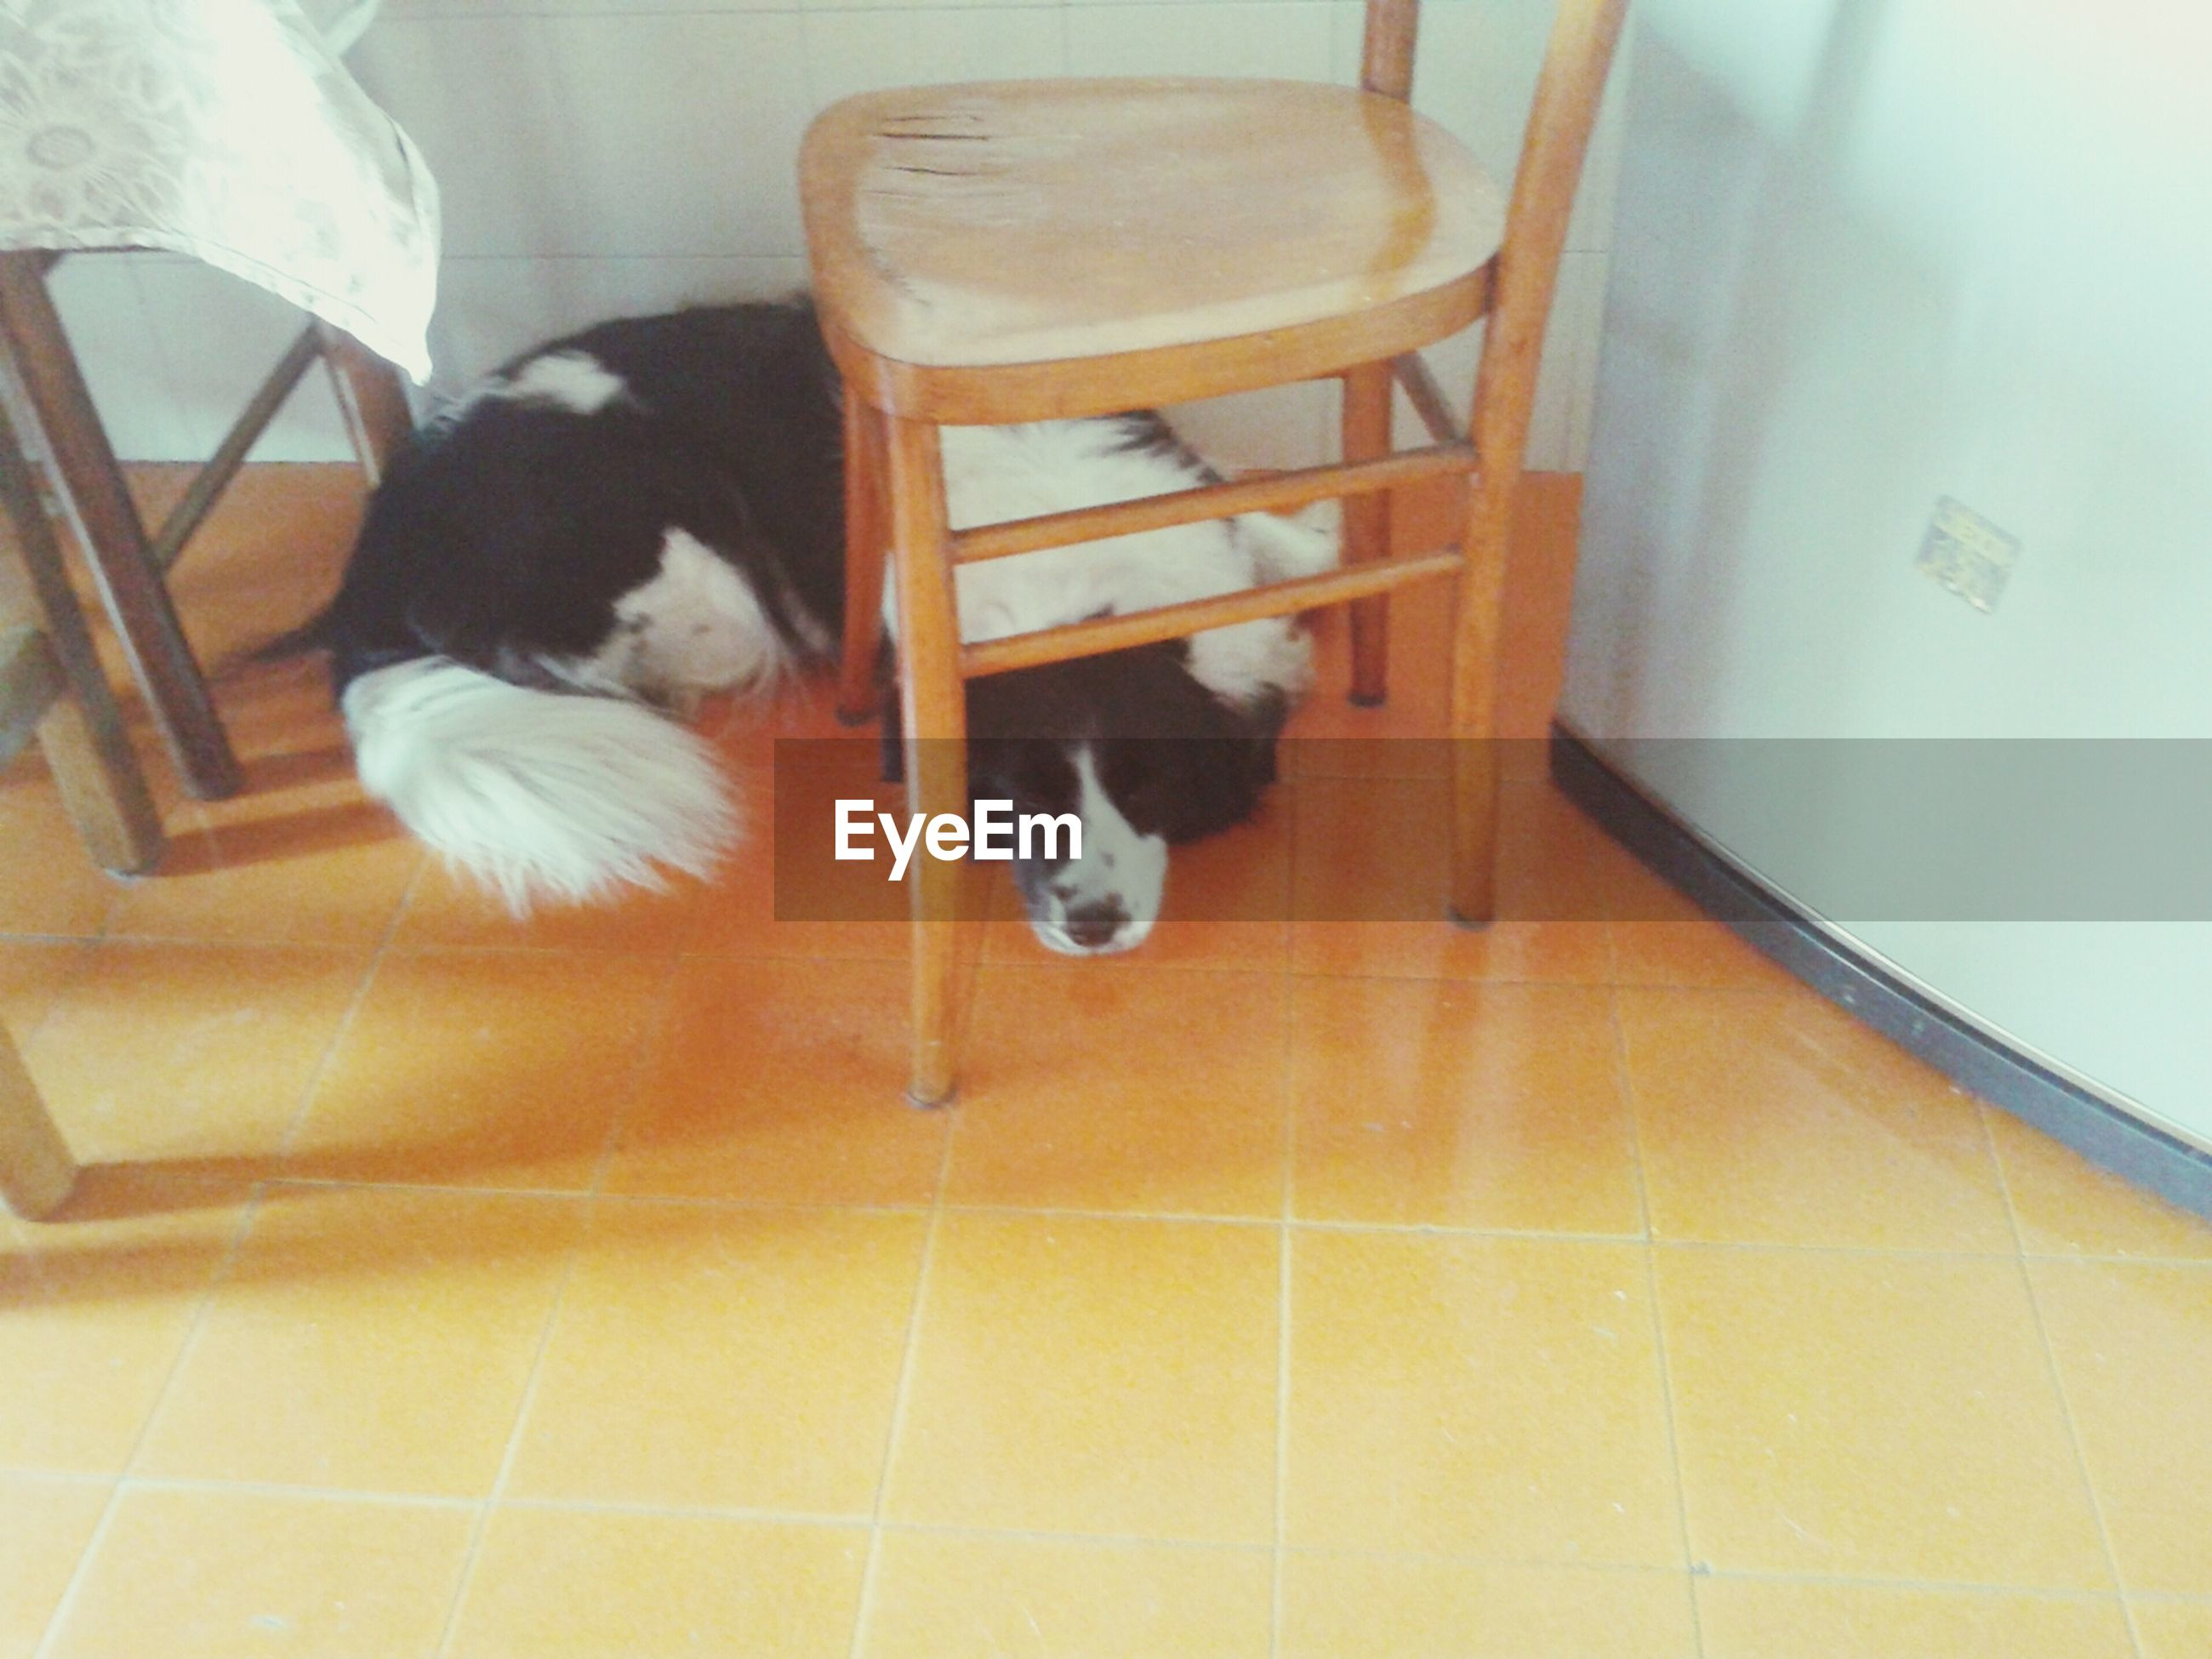 indoors, tiled floor, flooring, high angle view, animal themes, floor, pets, domestic animals, one animal, tile, chair, relaxation, home interior, hardwood floor, no people, domestic cat, sitting, cat, table, wood - material